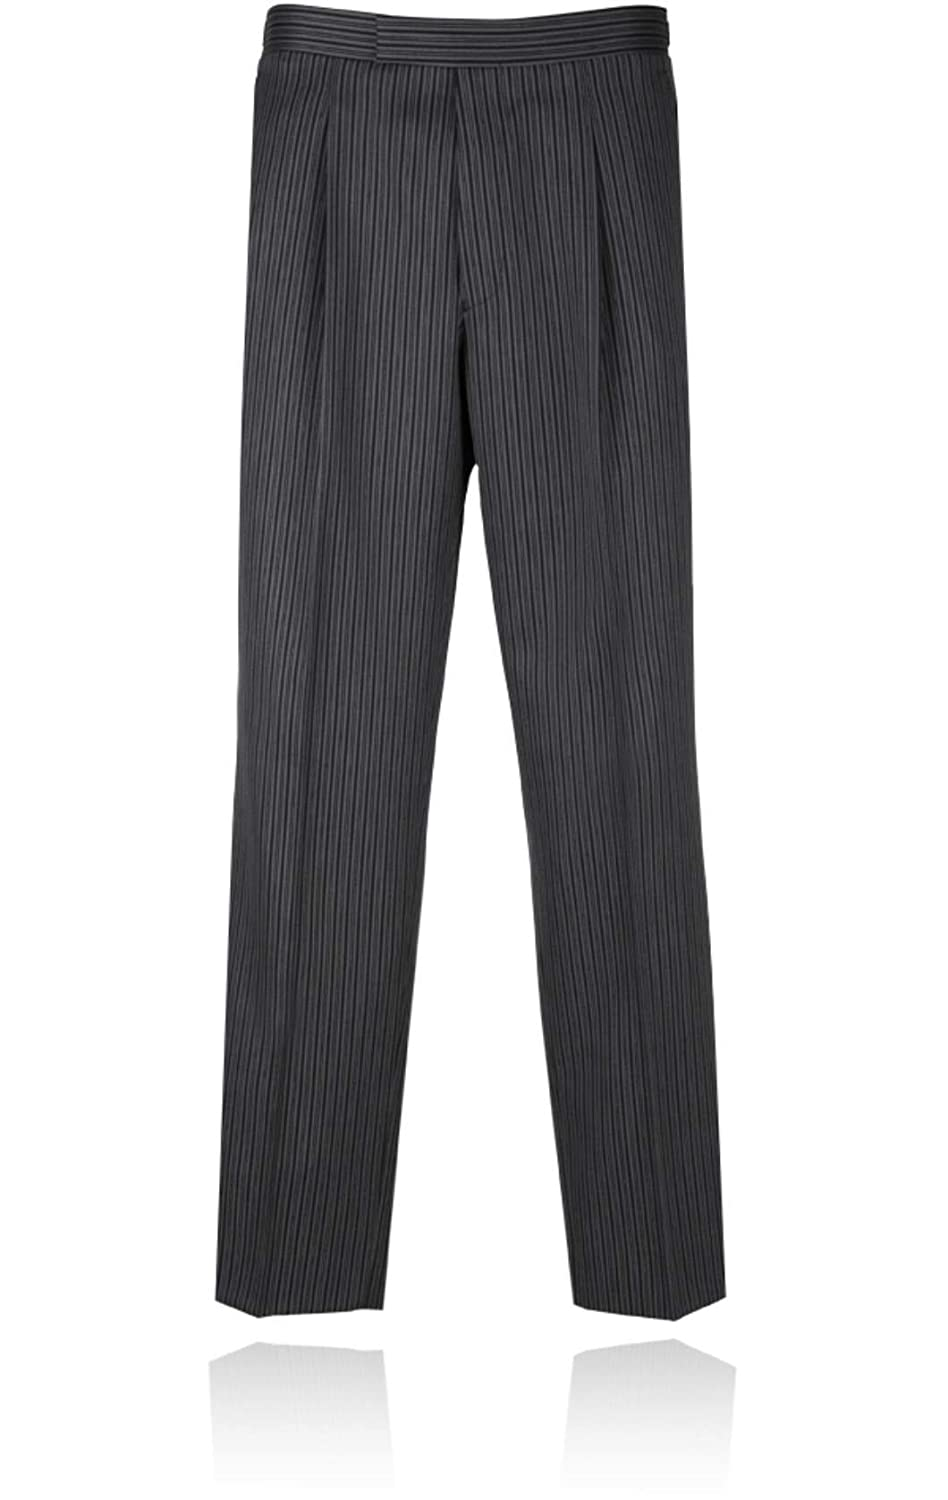 Edwardian Men's Pants Mens Black & Grey Striped Morning Suit Trousers £50.00 AT vintagedancer.com